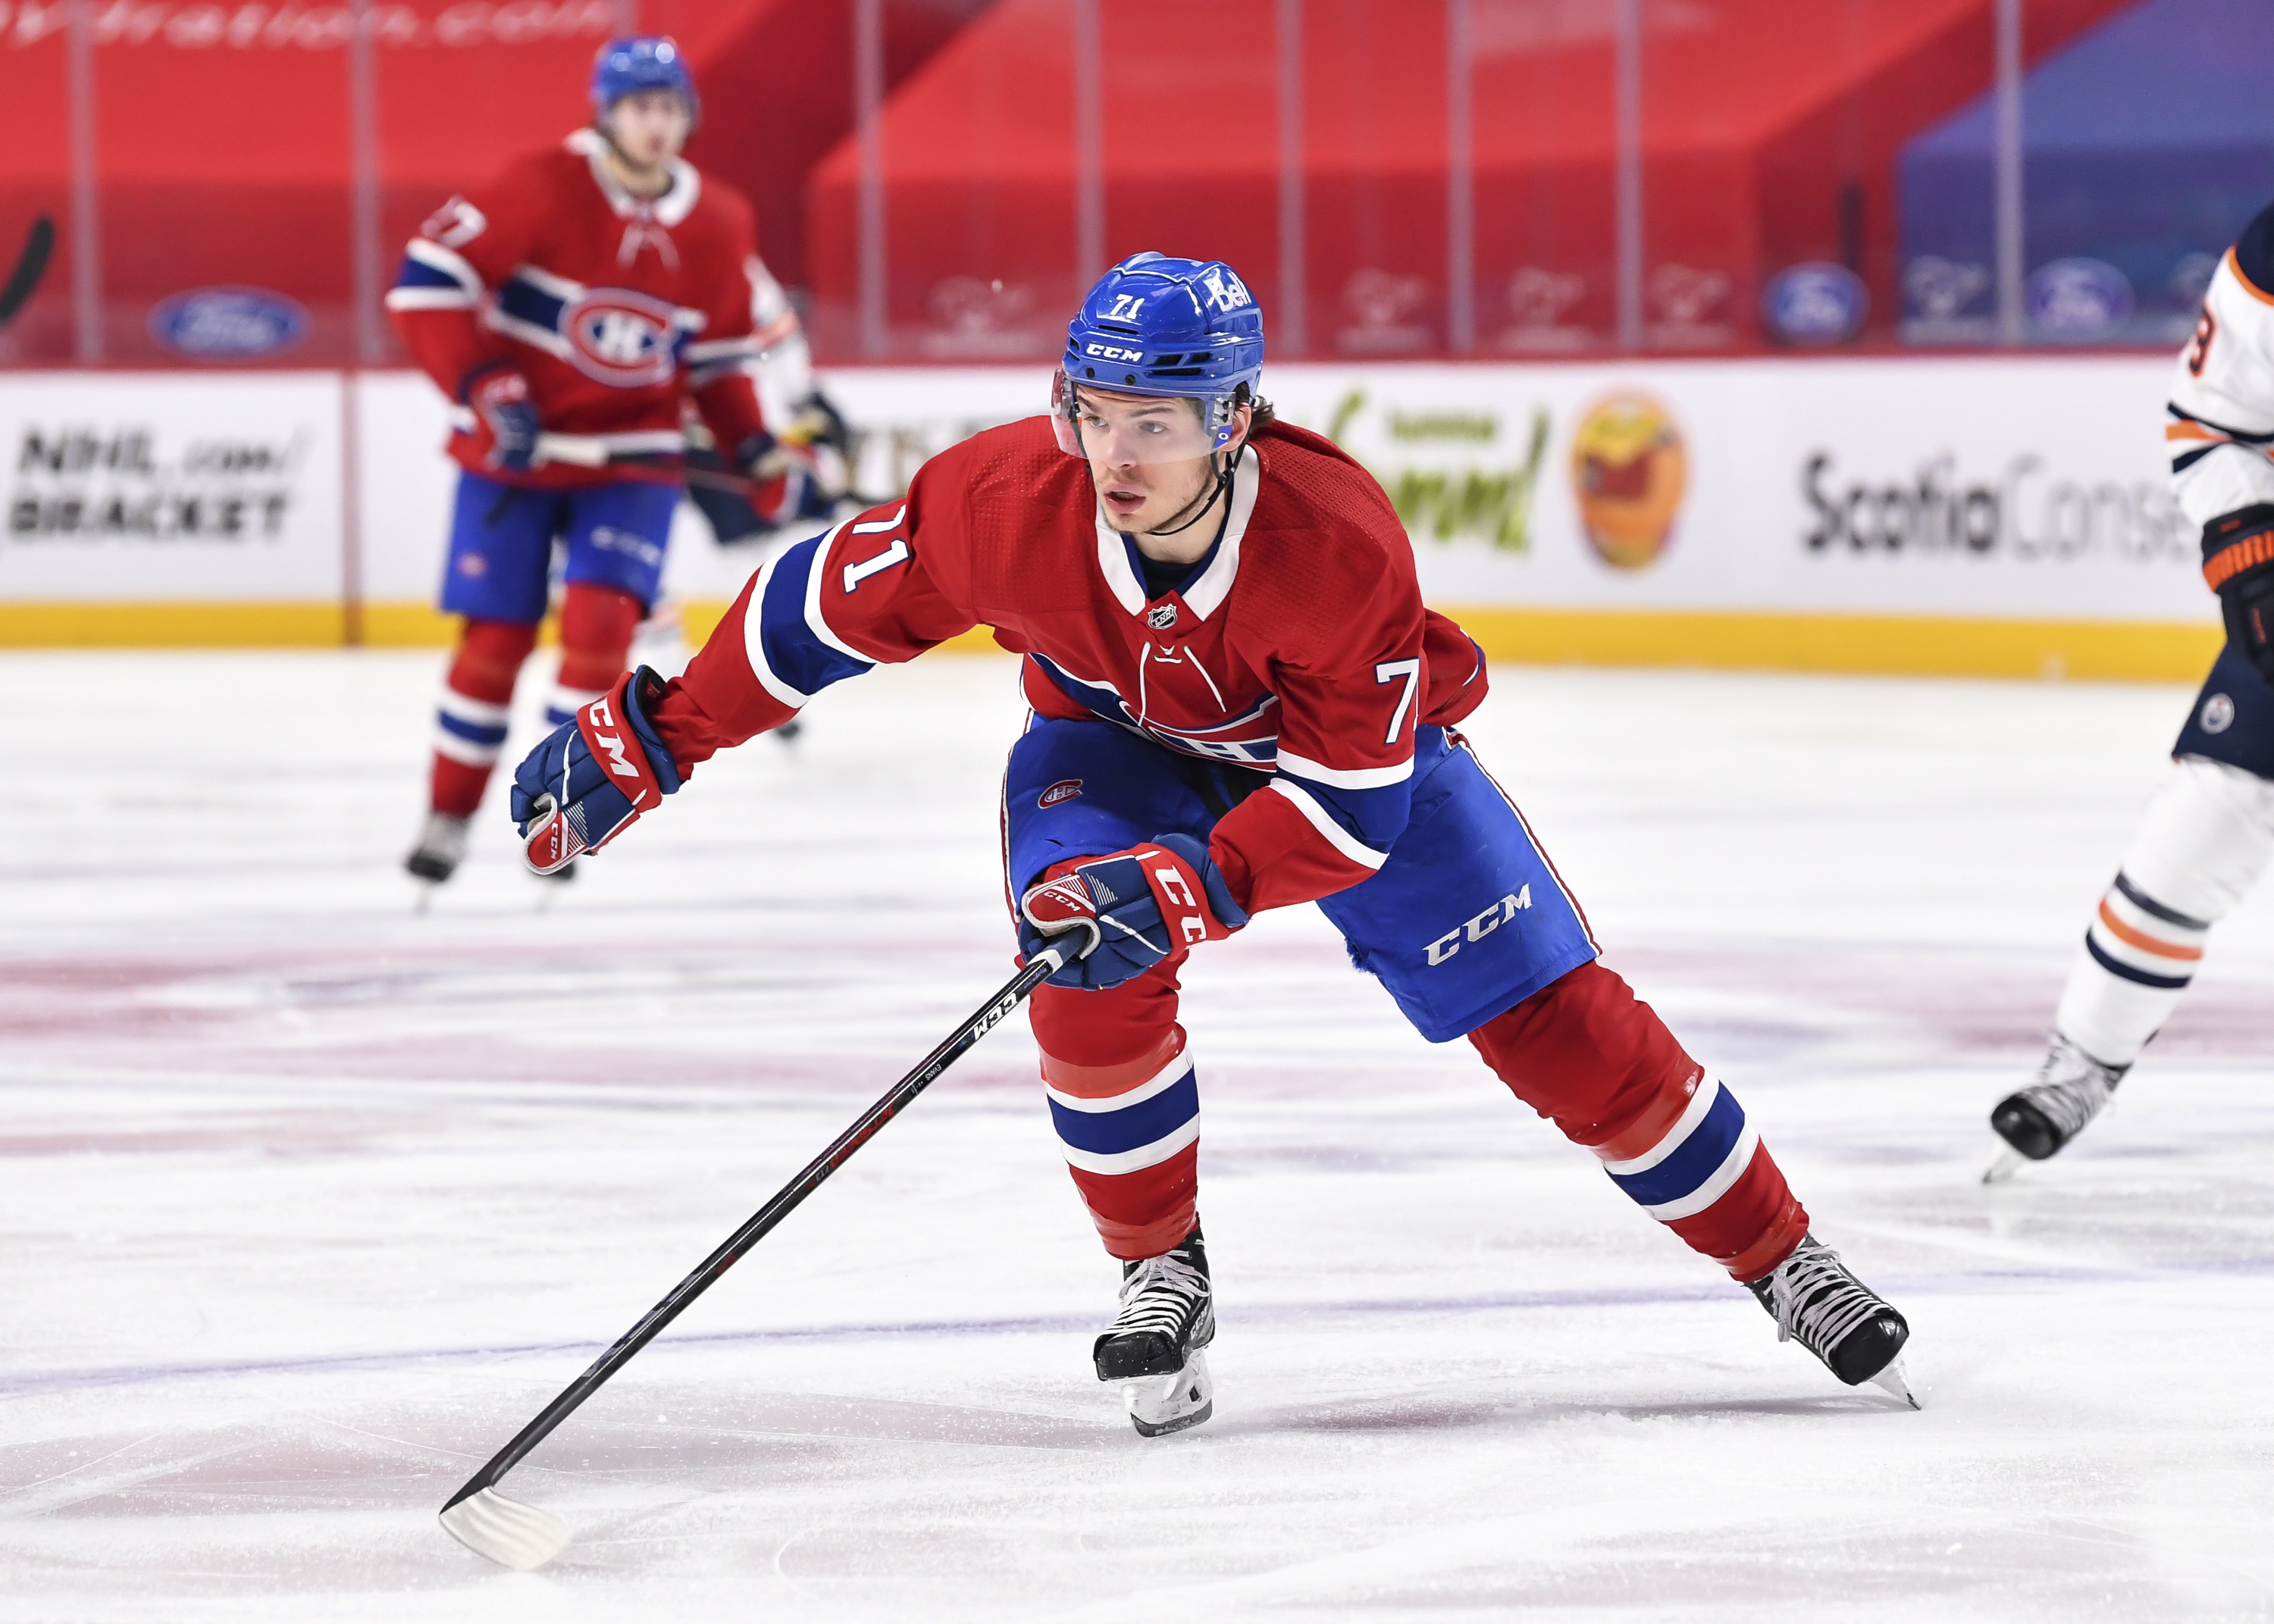 Jake Evans #71 of the Montreal Canadiens skates against the Edmonton Oilers during the second period at the Bell Centre on May 12, 2021 in Montreal, Canada. The Edmonton Oilers defeated the Montreal Canadiens 4-3 in overtime.